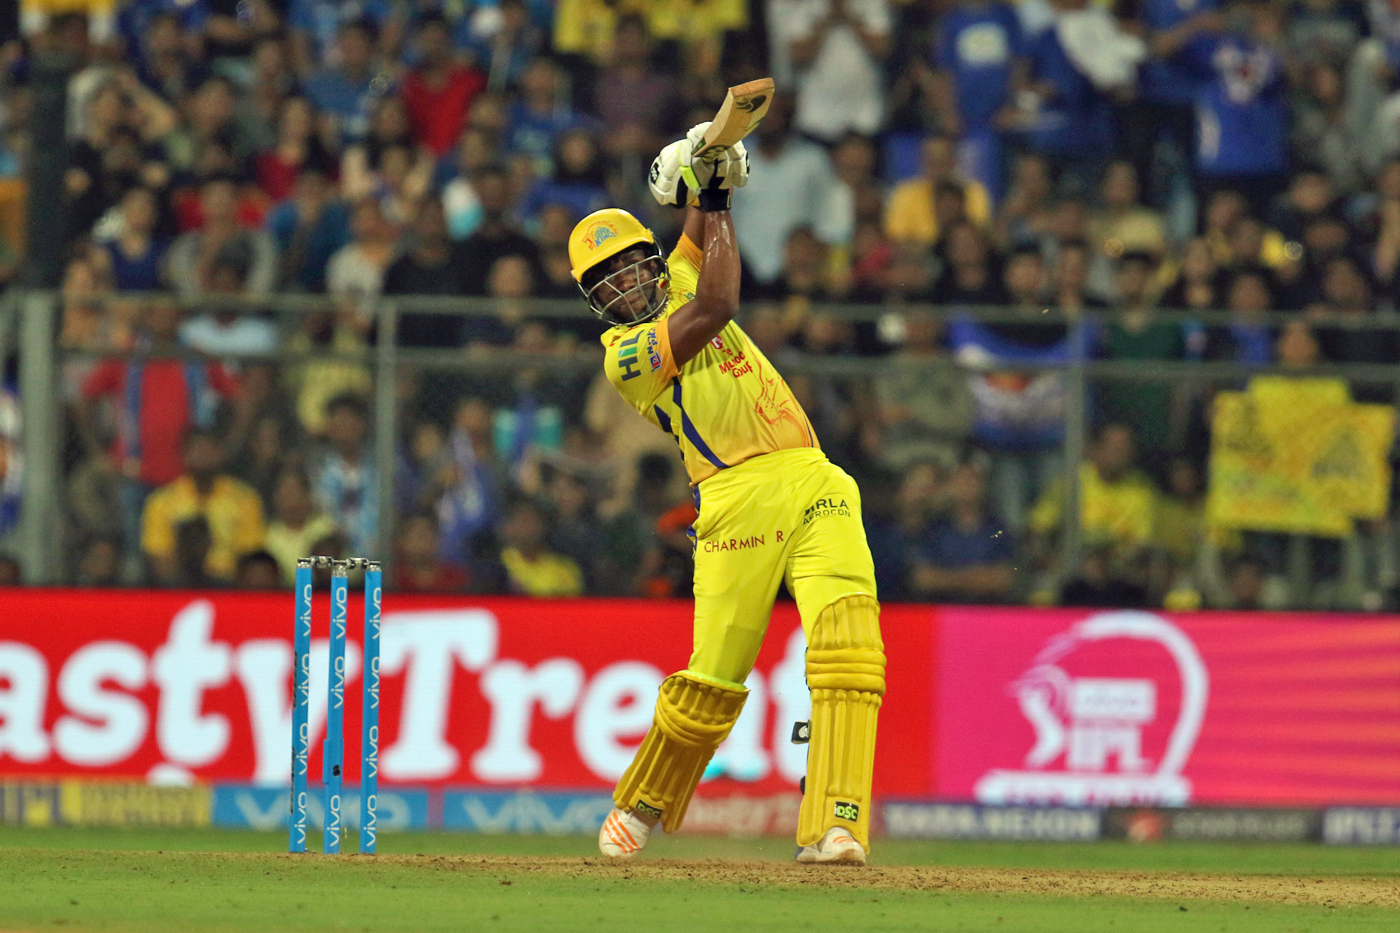 IPL 2018: Chennai Super Kings begins campaign with thrilling win